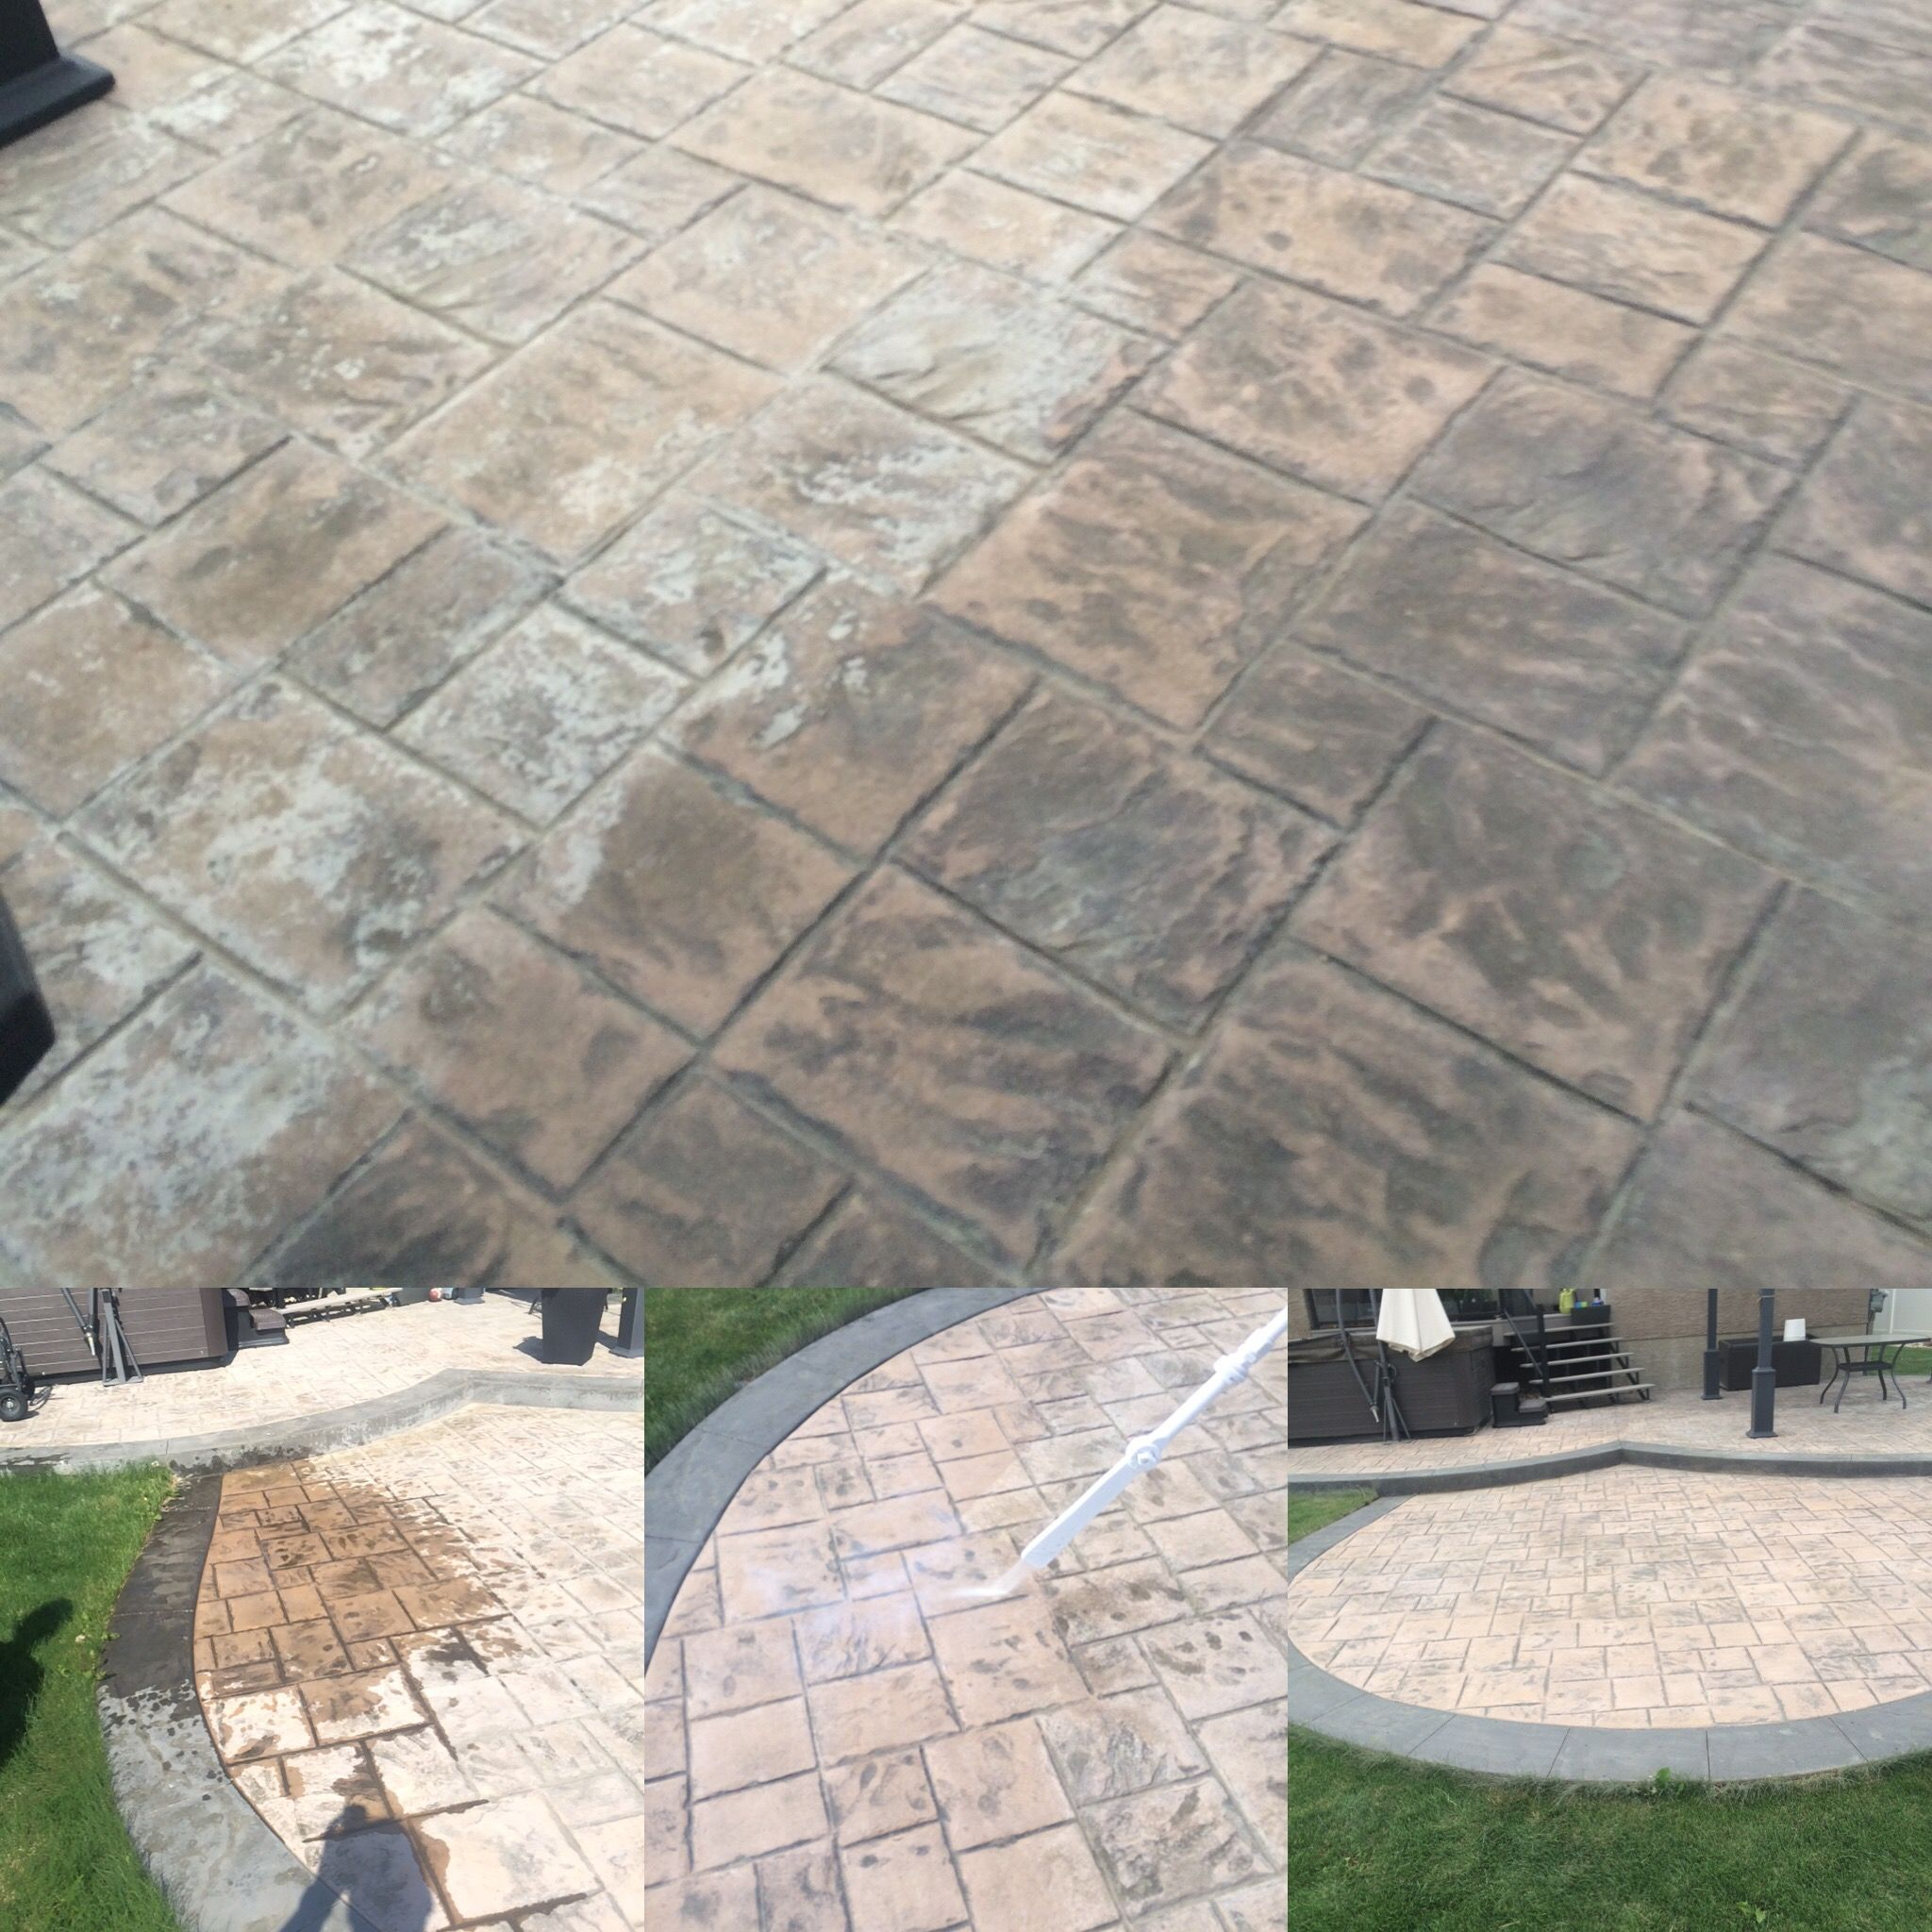 Using Dry Ice Blasting to remove concrete sealer from a